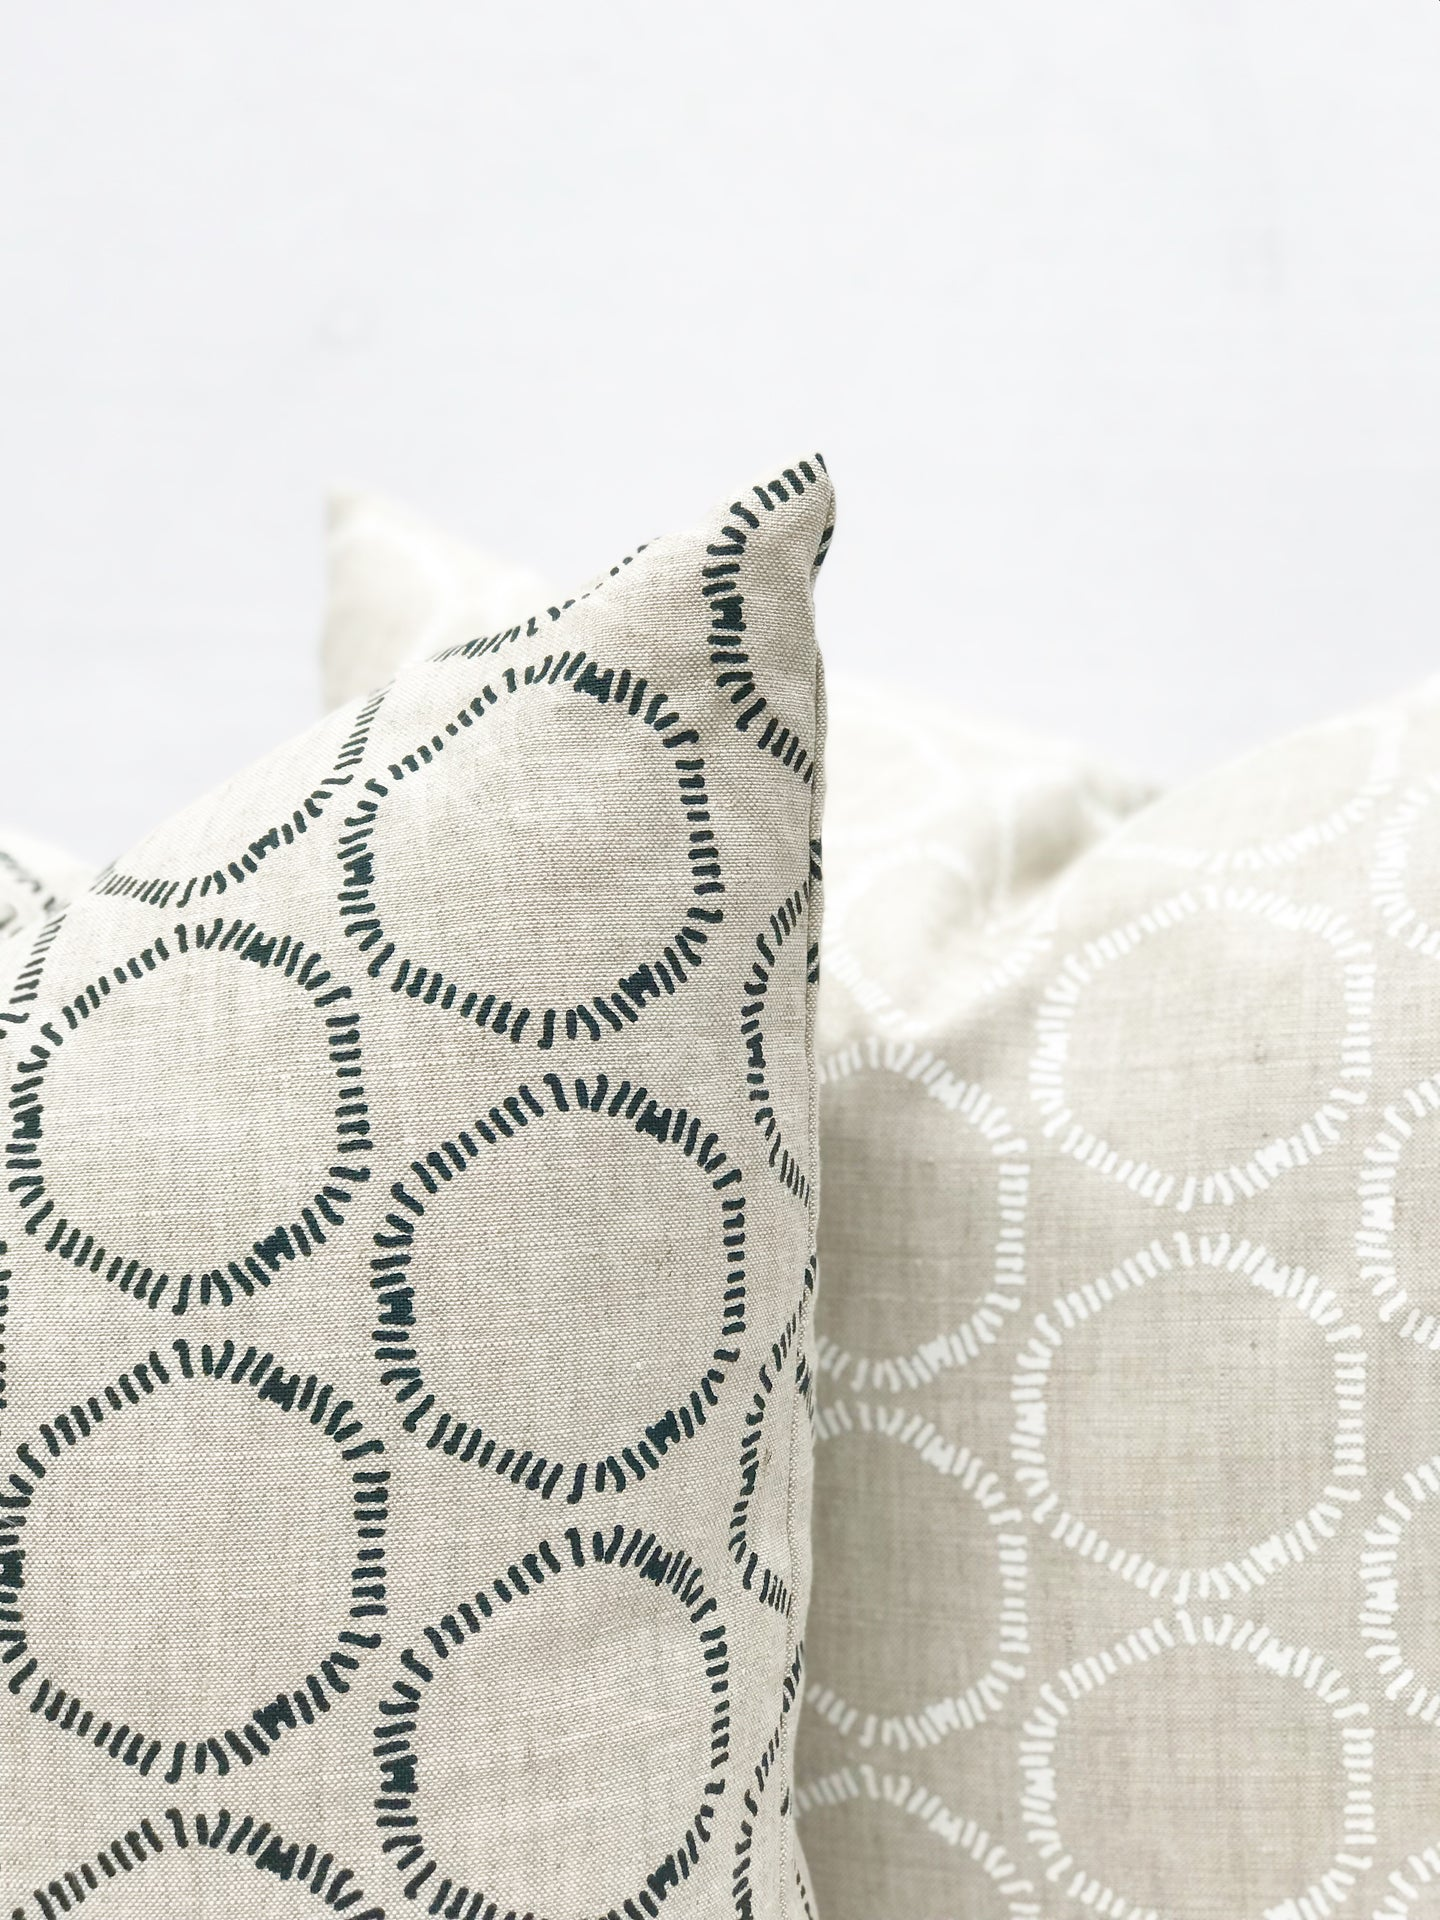 greige textiles hand printed in california on belgian linen, cape fabric in dublin on oatmeal and cape white on oatmeal